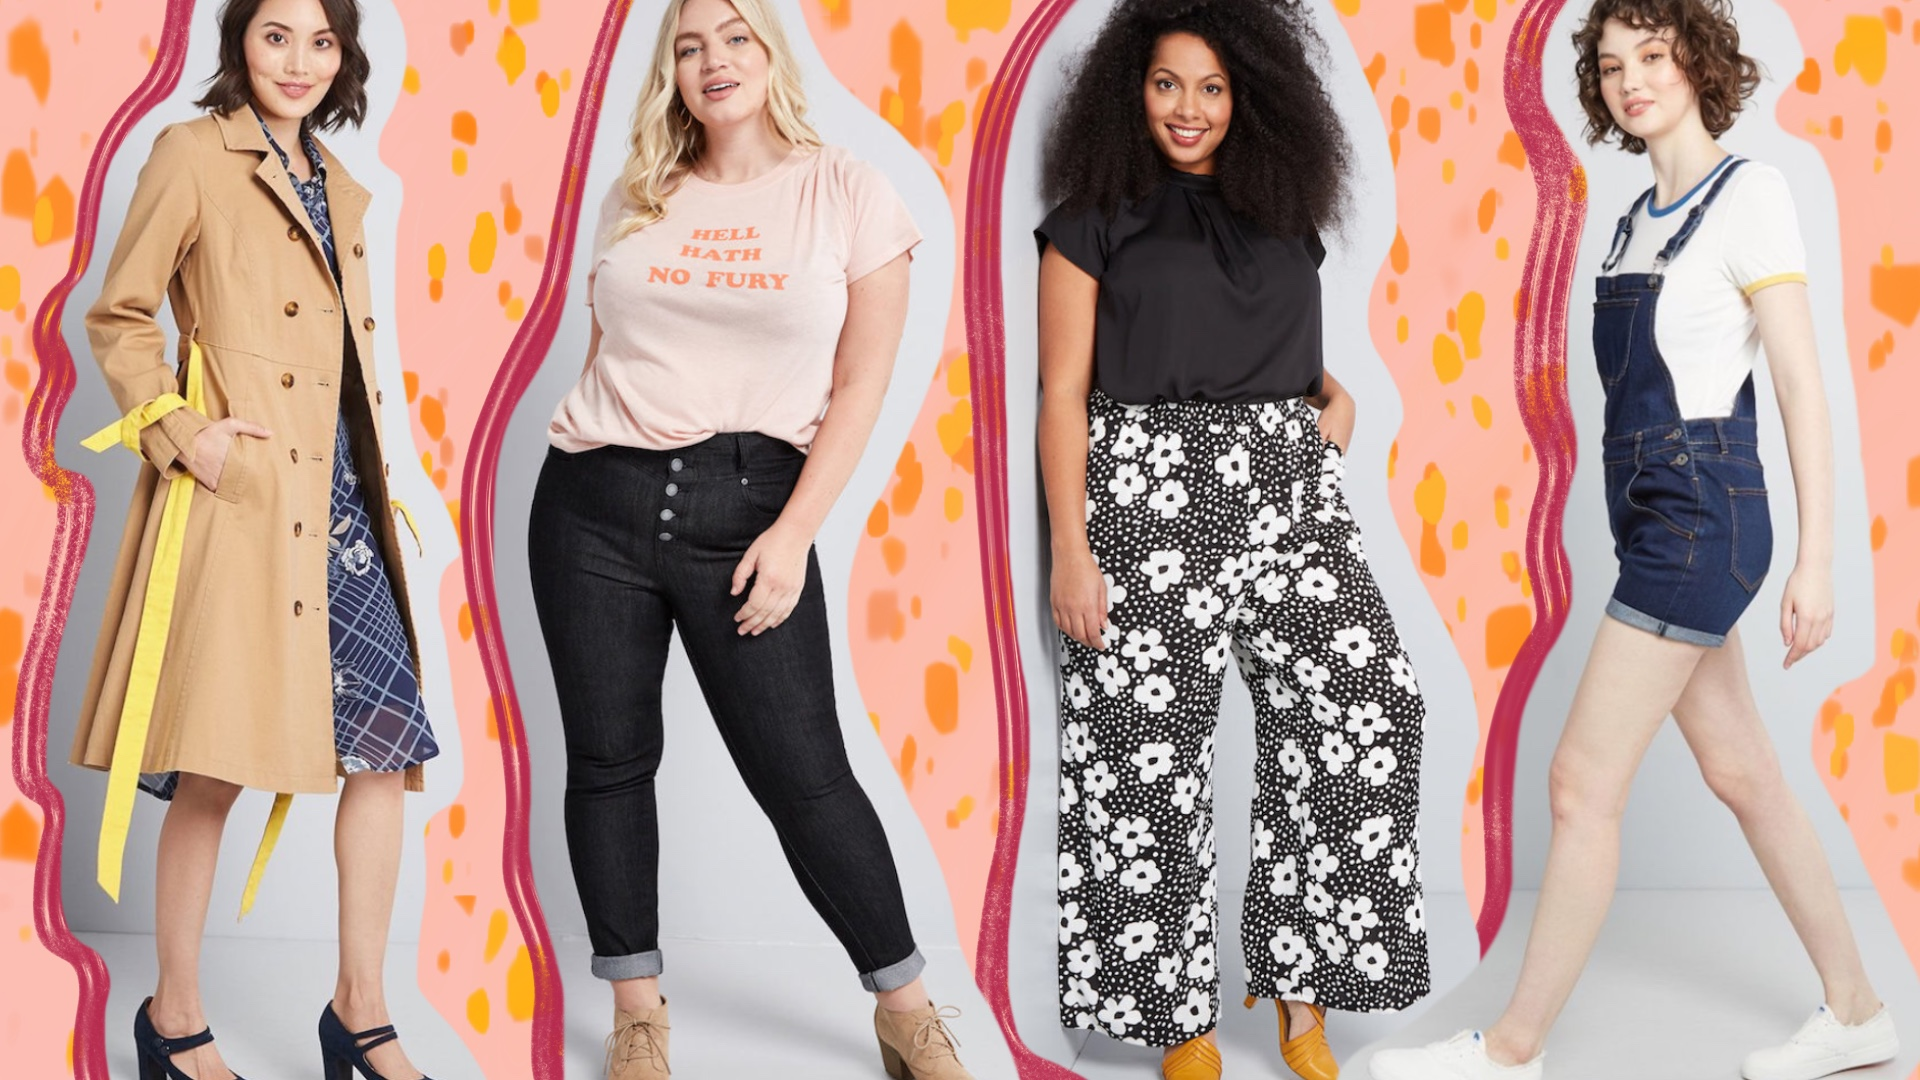 Get Your Wallets Ready, Because Modcloth's Outlet Site Is Full of Unbelievable Deals